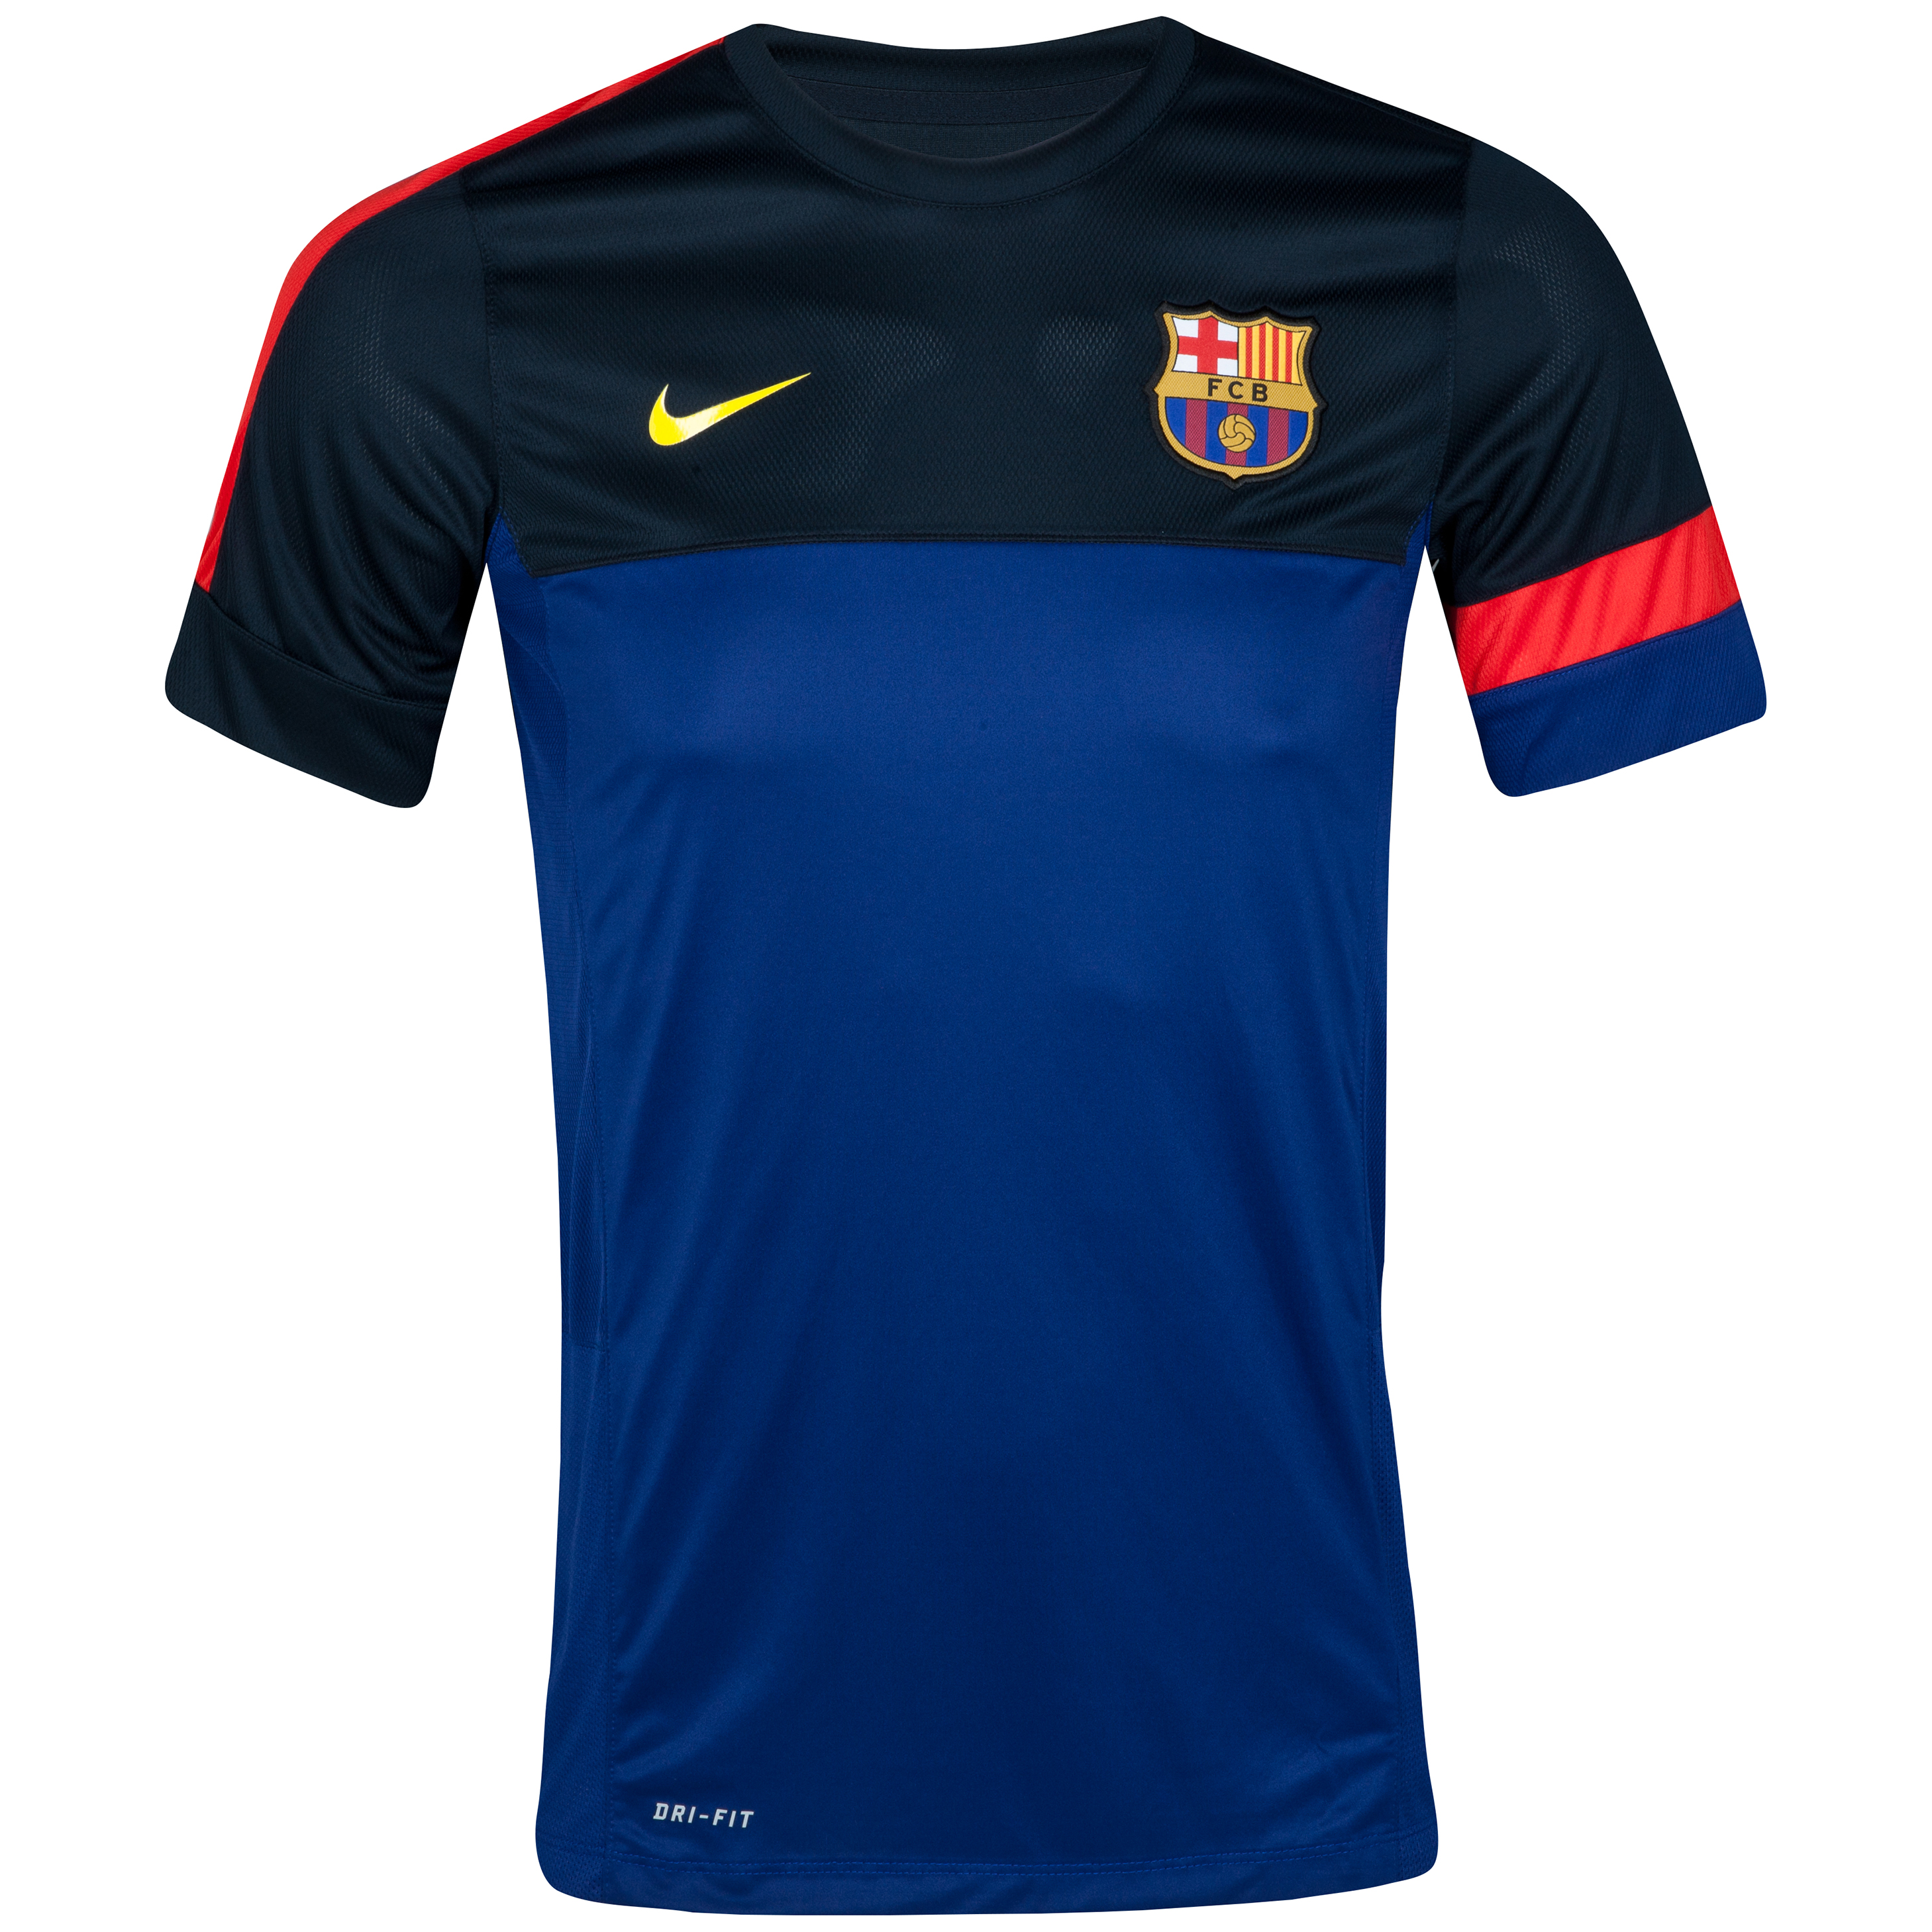 Barcelona Short Sleeve Training Top - Deep Royal Blue/Tour Yellow